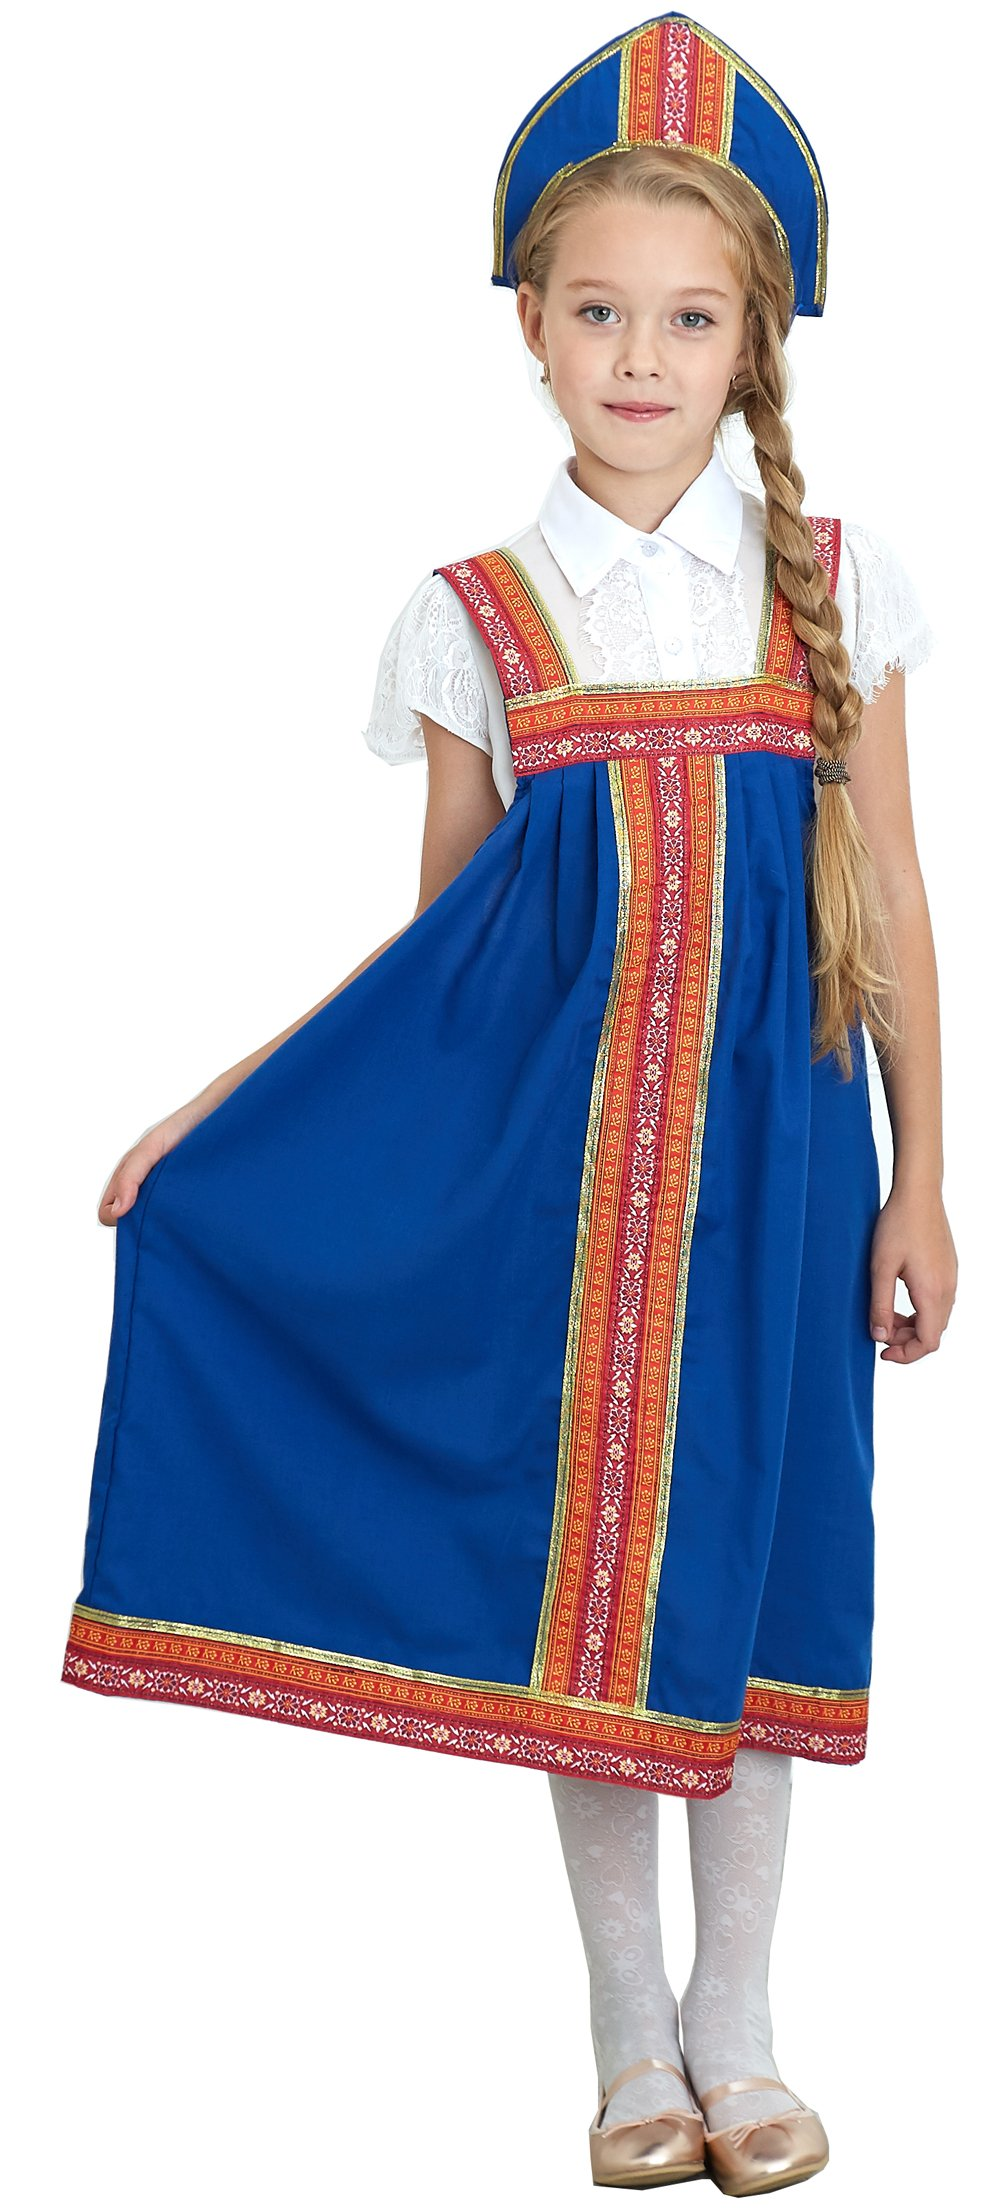 NATALIJA Russian Heritage Cosplay Girls Outfit Costume Dress,Blue,8-12 years-old